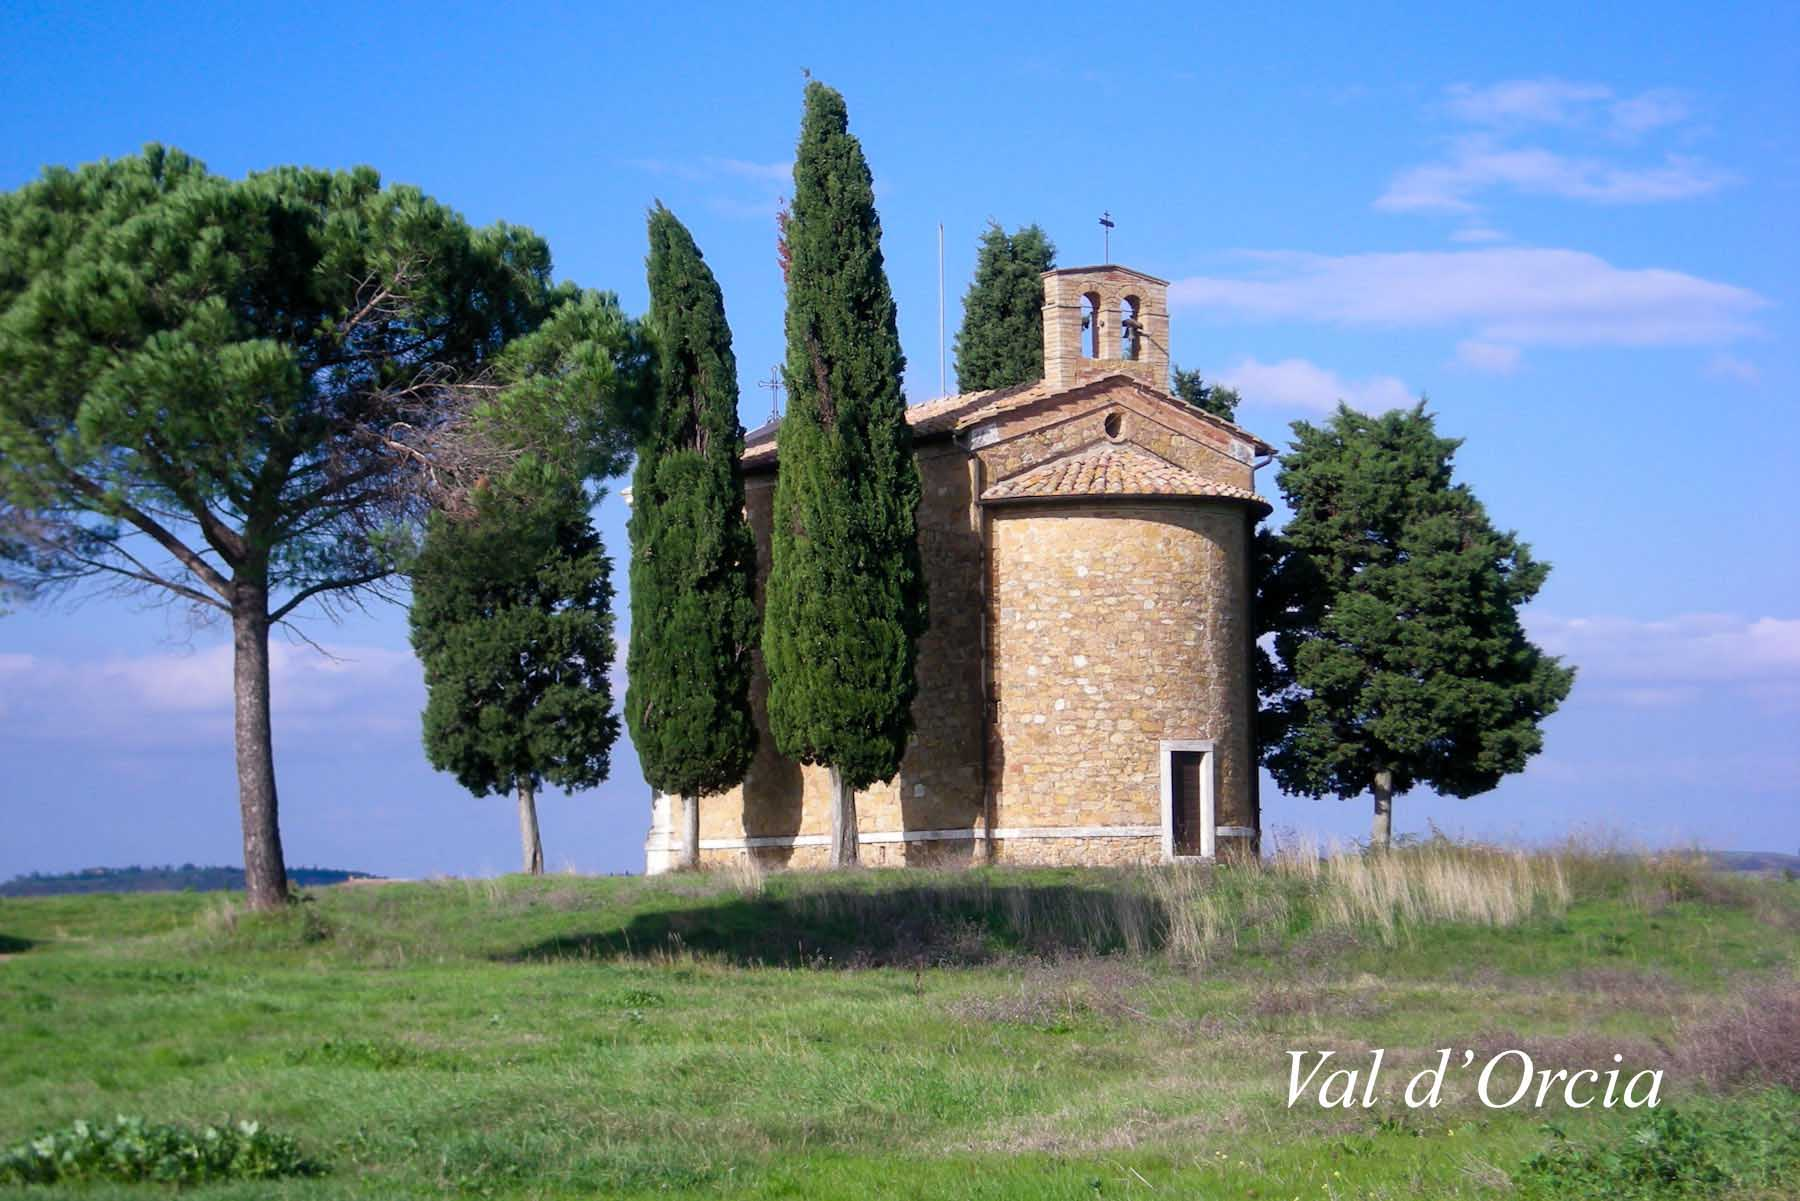 Val d'Orcia - Best places to visit in Tuscany